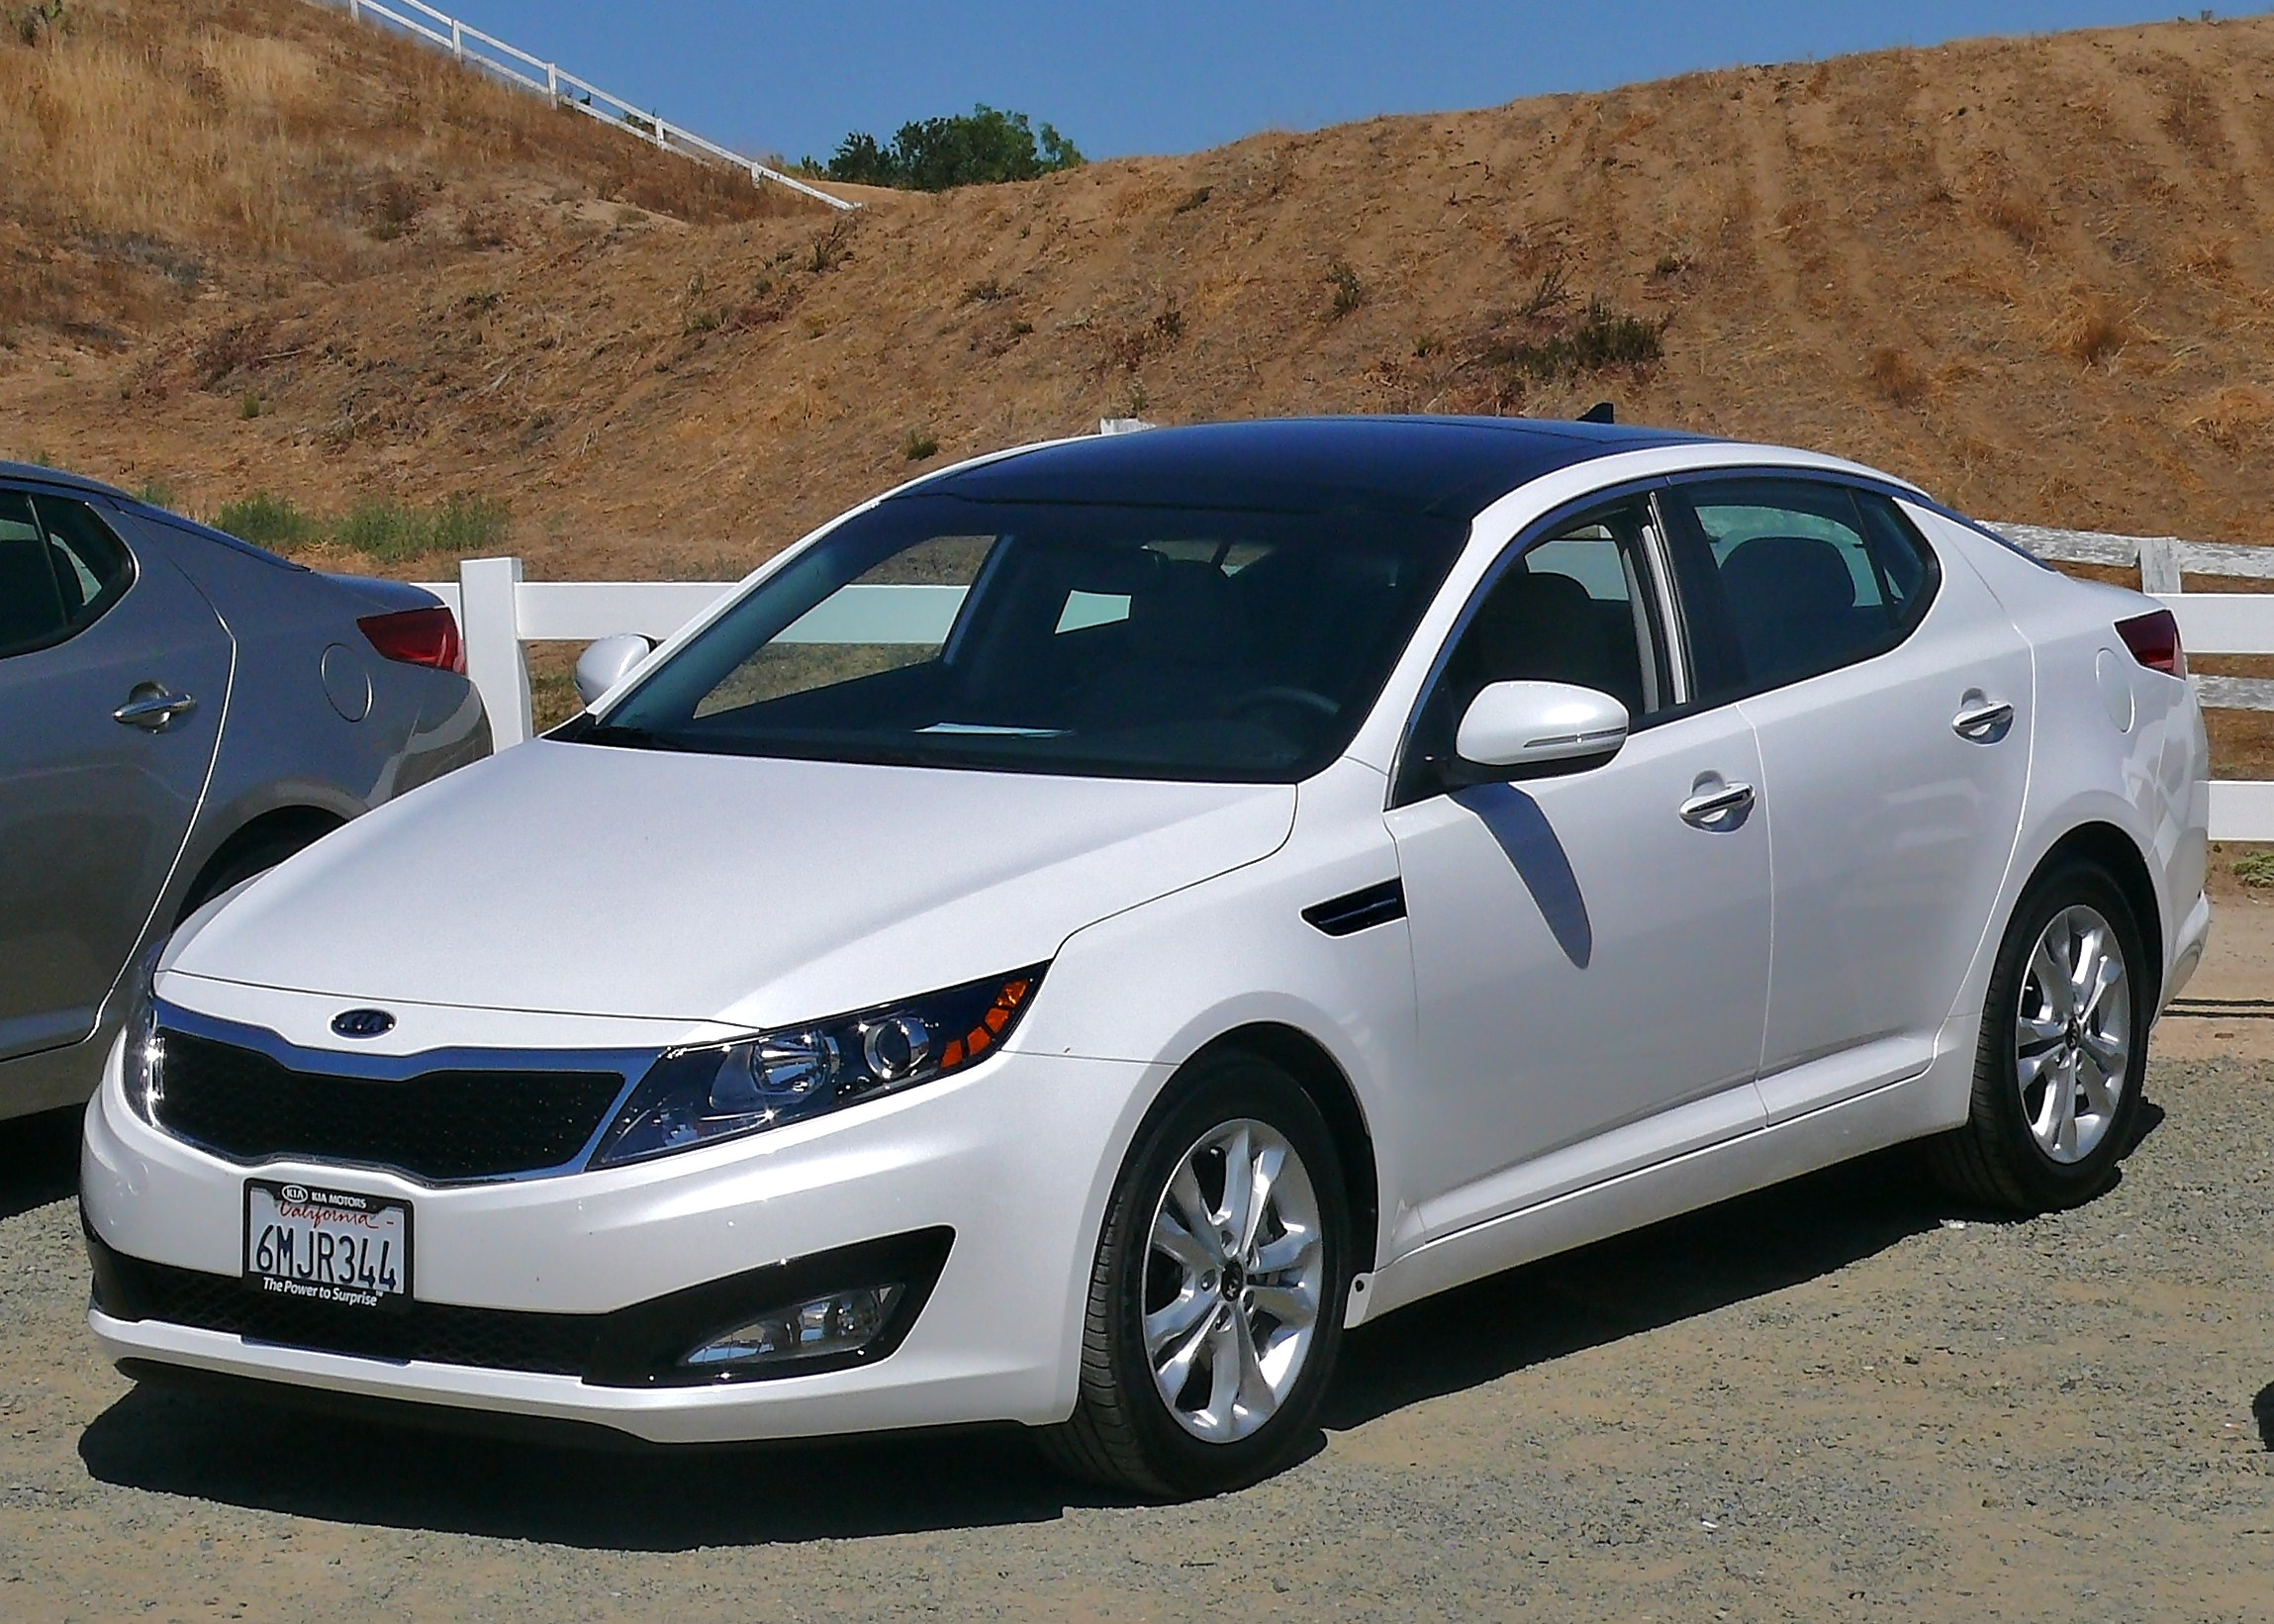 KIA OPTIMA 2.4 white